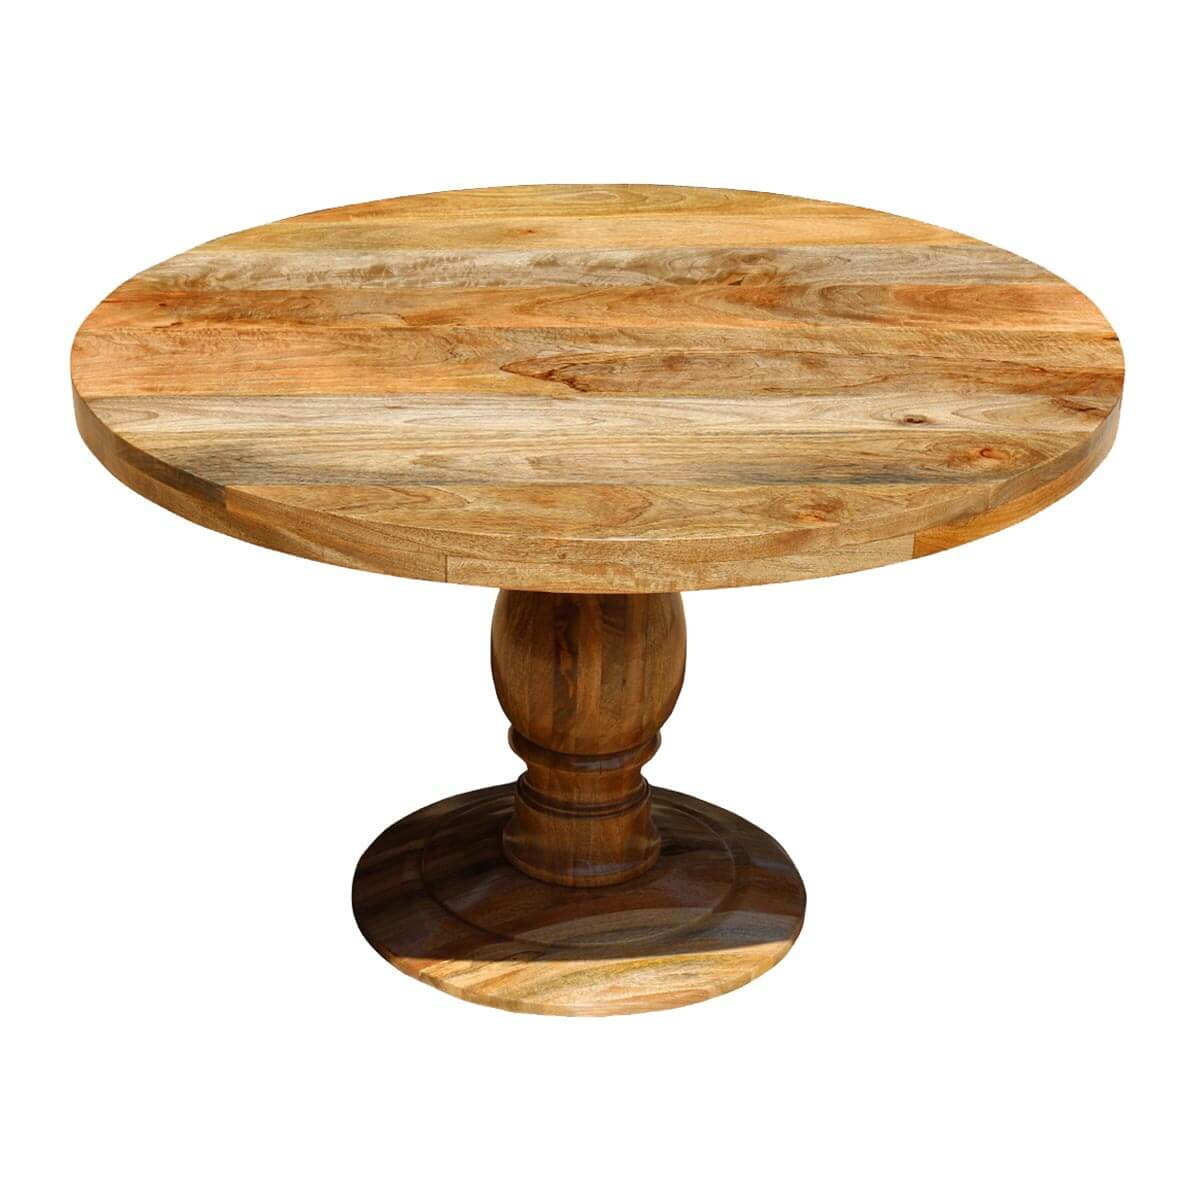 Rustic Mango Wood 48 Round Pedestal Dining Table